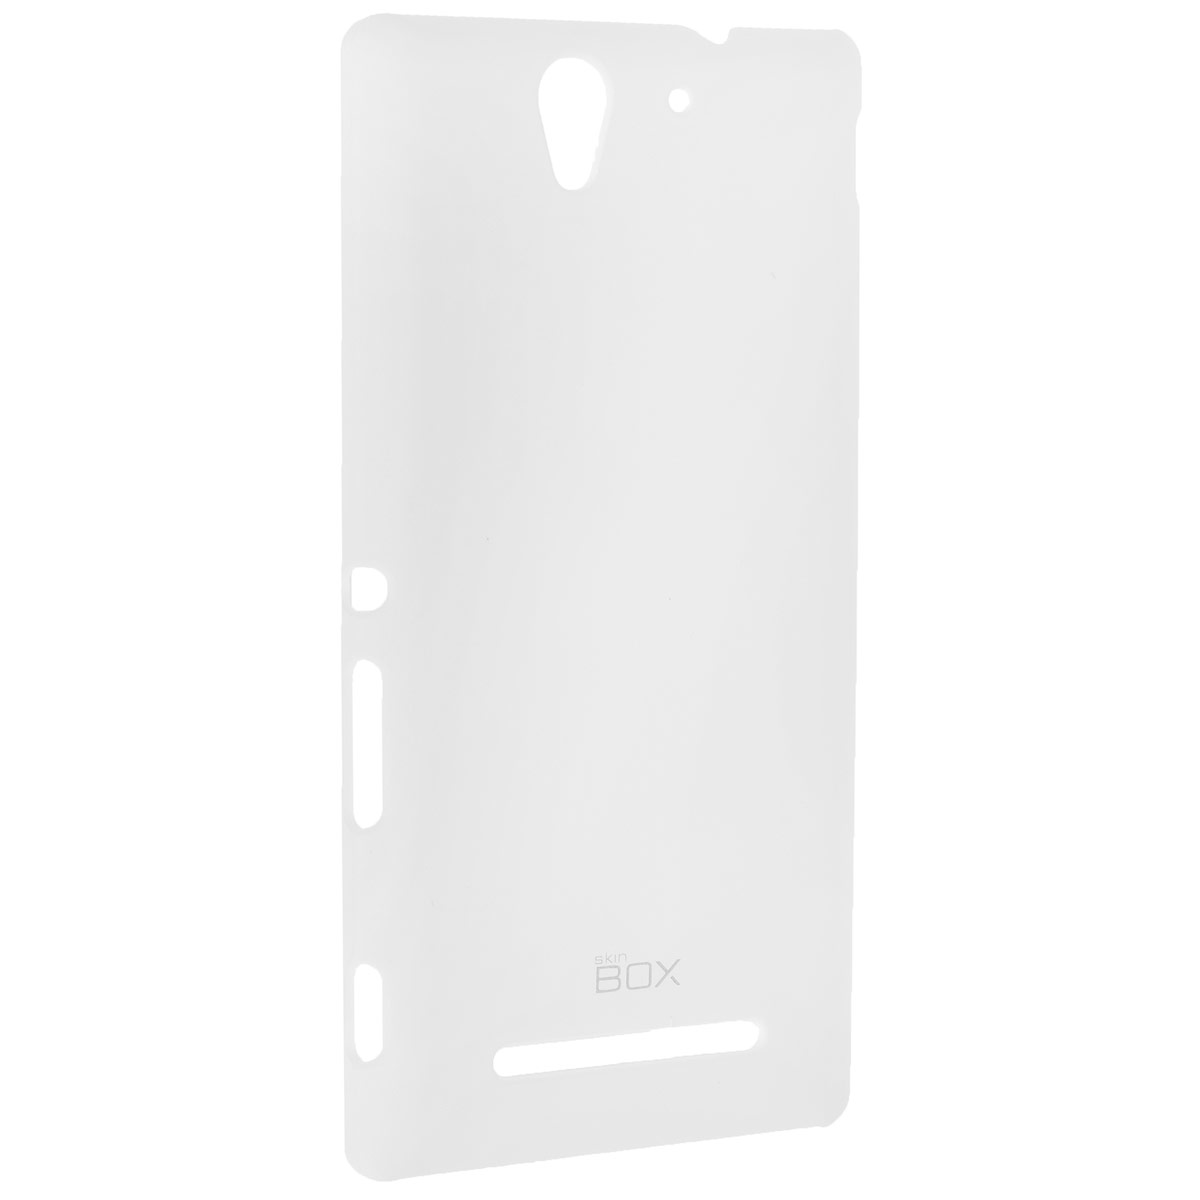 Skinbox Shield 4People чехол для Sony Xperia C3, White чехлы для телефонов skinbox lg max l bello 2 skinbox shield 4people